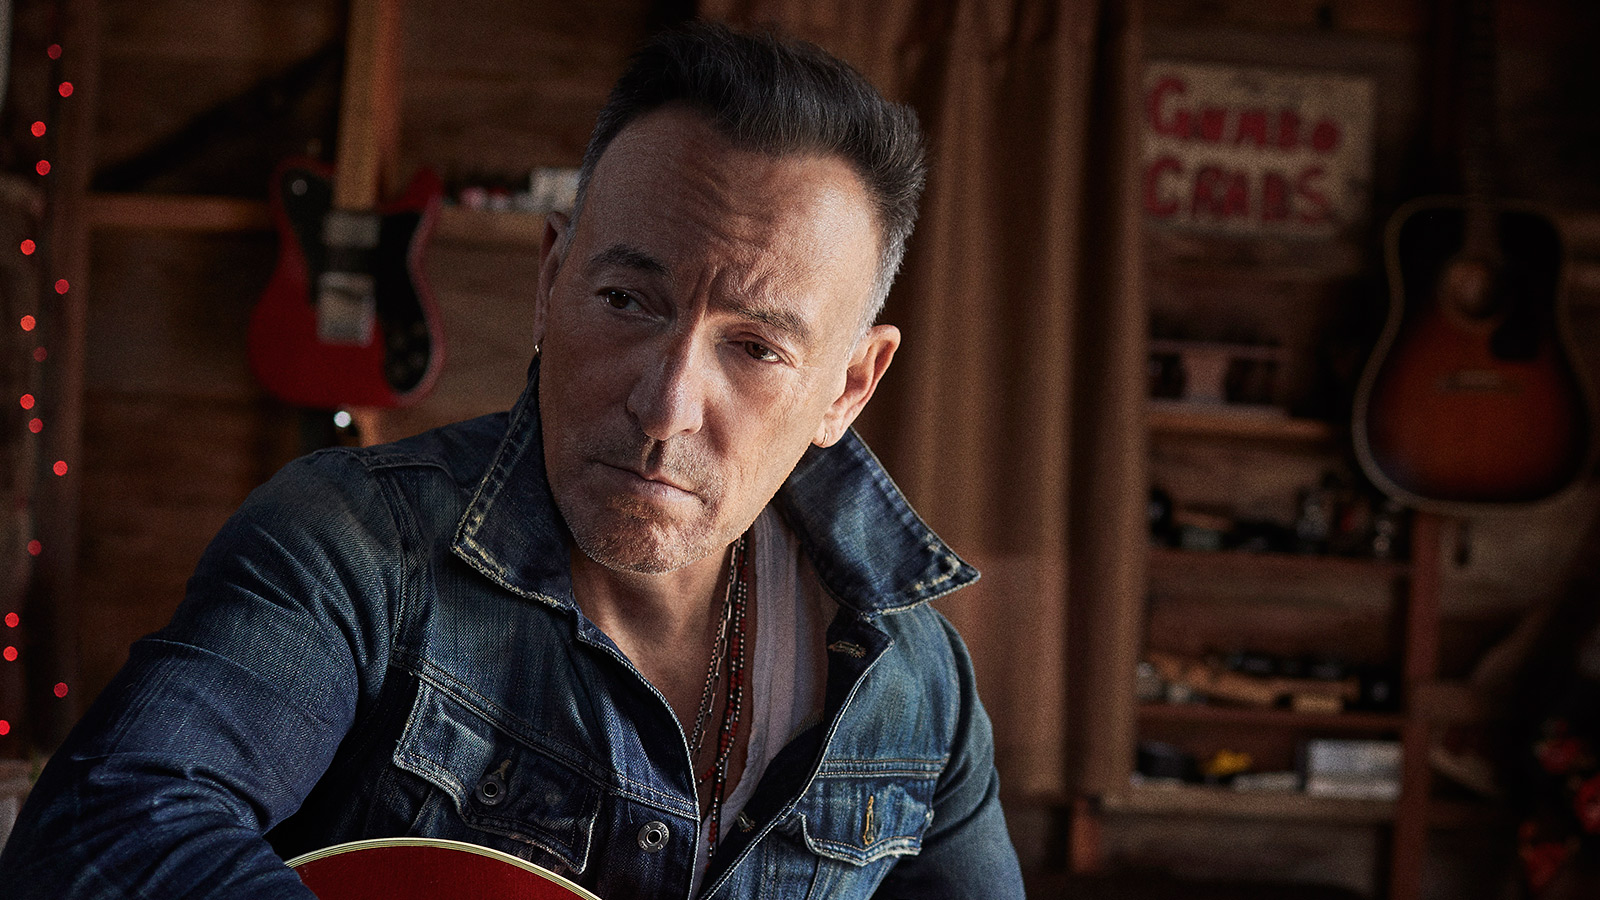 Springsteen embraces veterans and the question of patriotism.